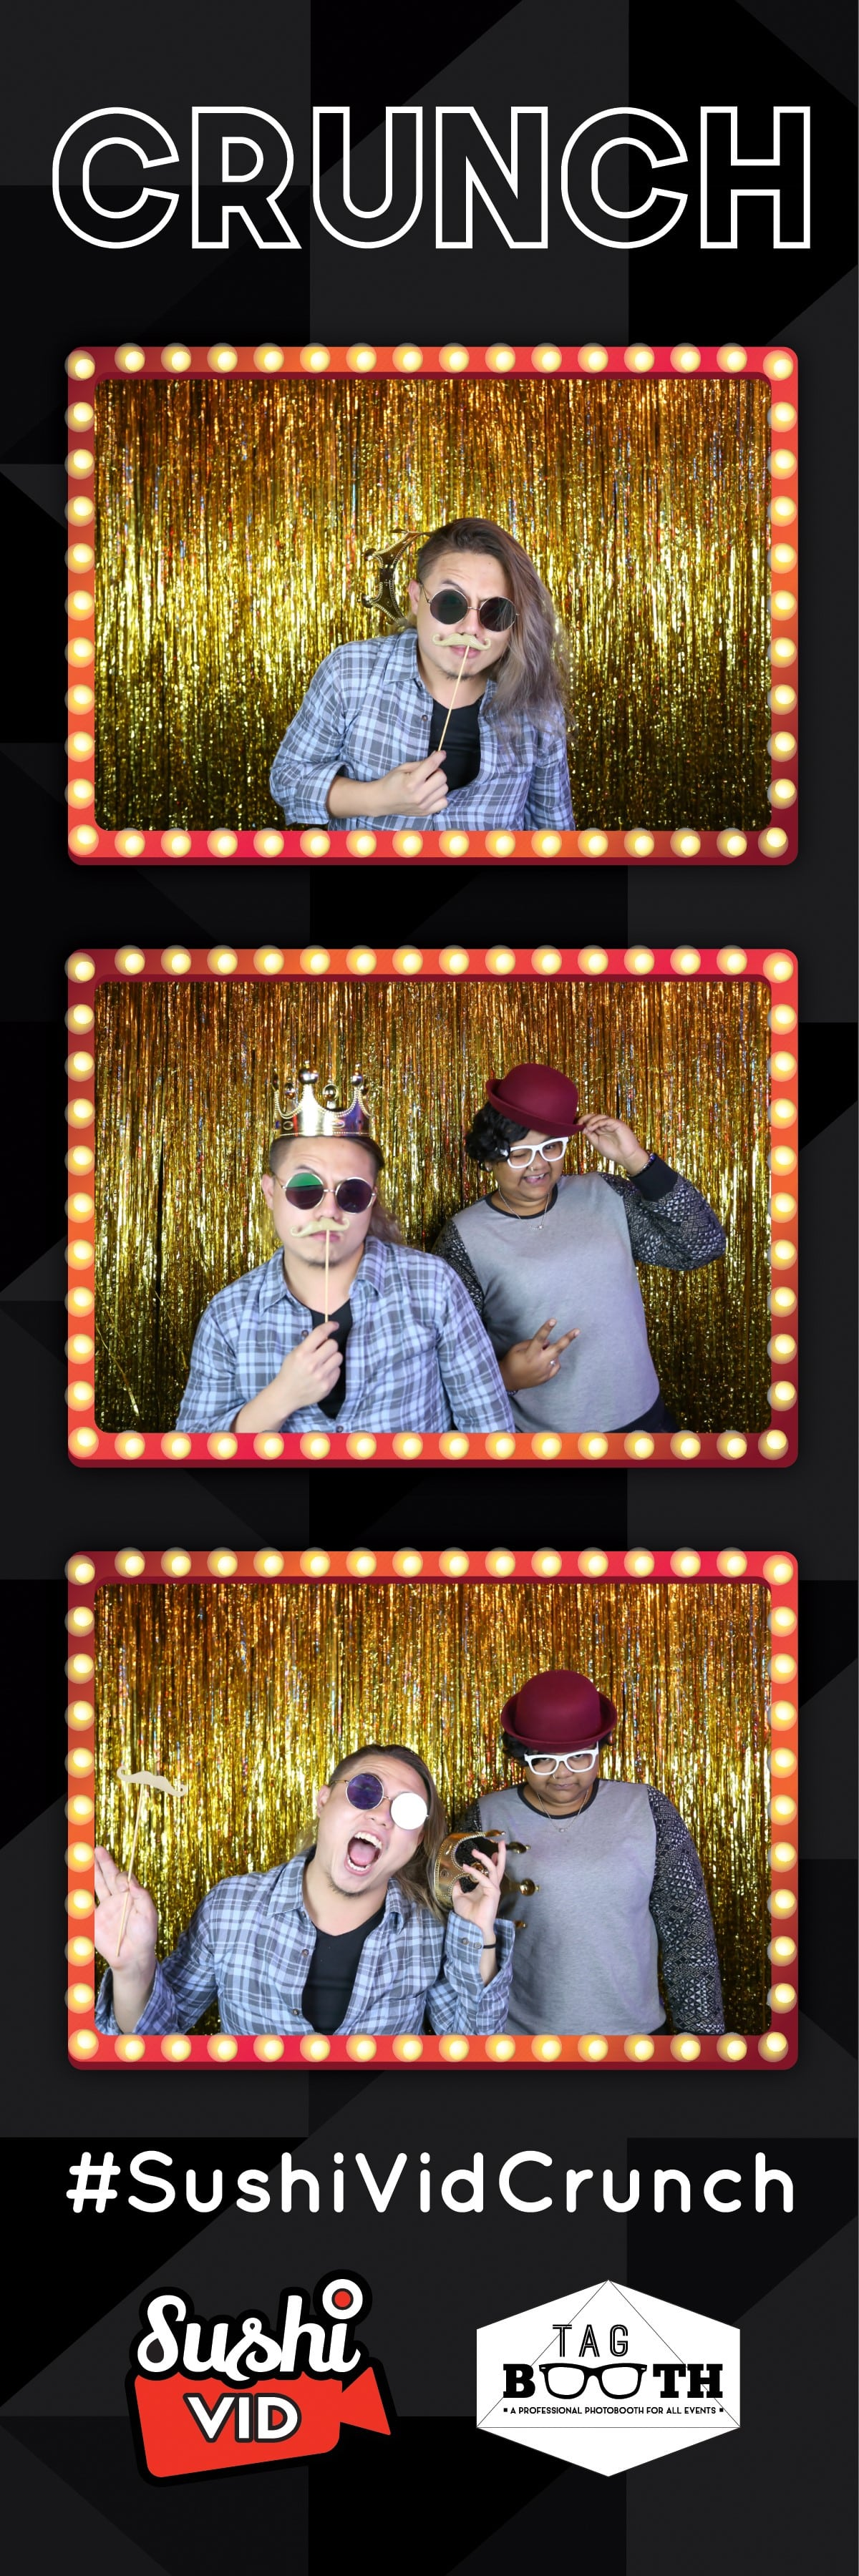 Sushivid+crunch+tagbooth1+16